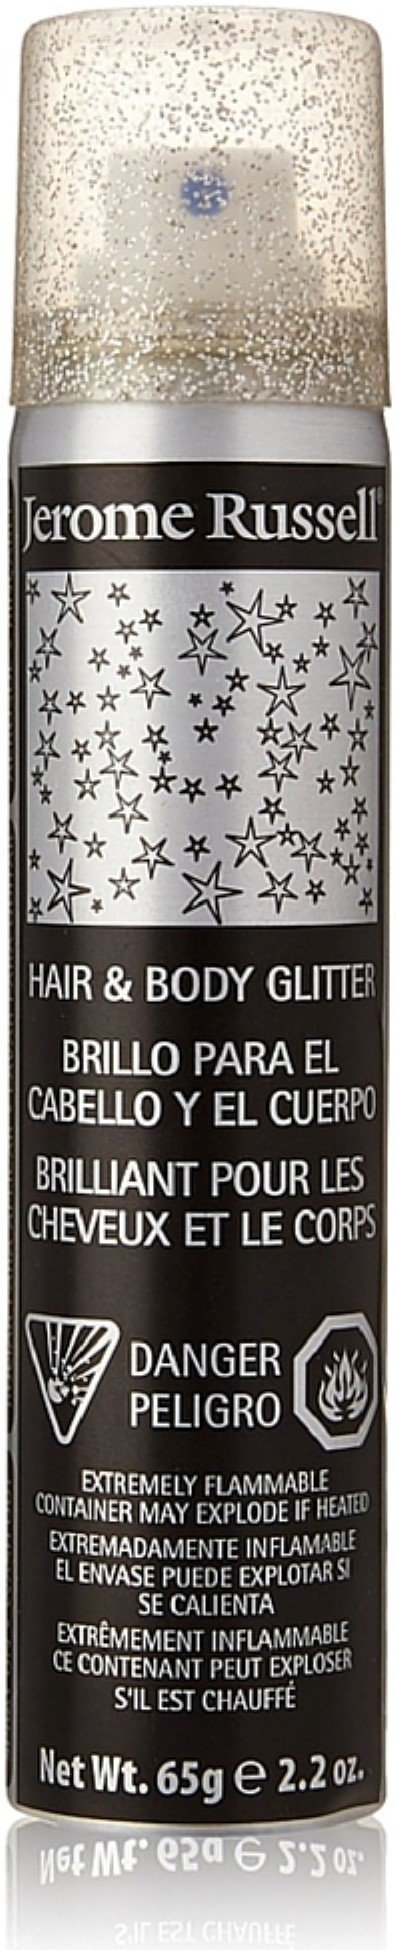 Jerome Russell Hair & Body Glitter Spray, Silver 2.2 oz (Pack of 3)